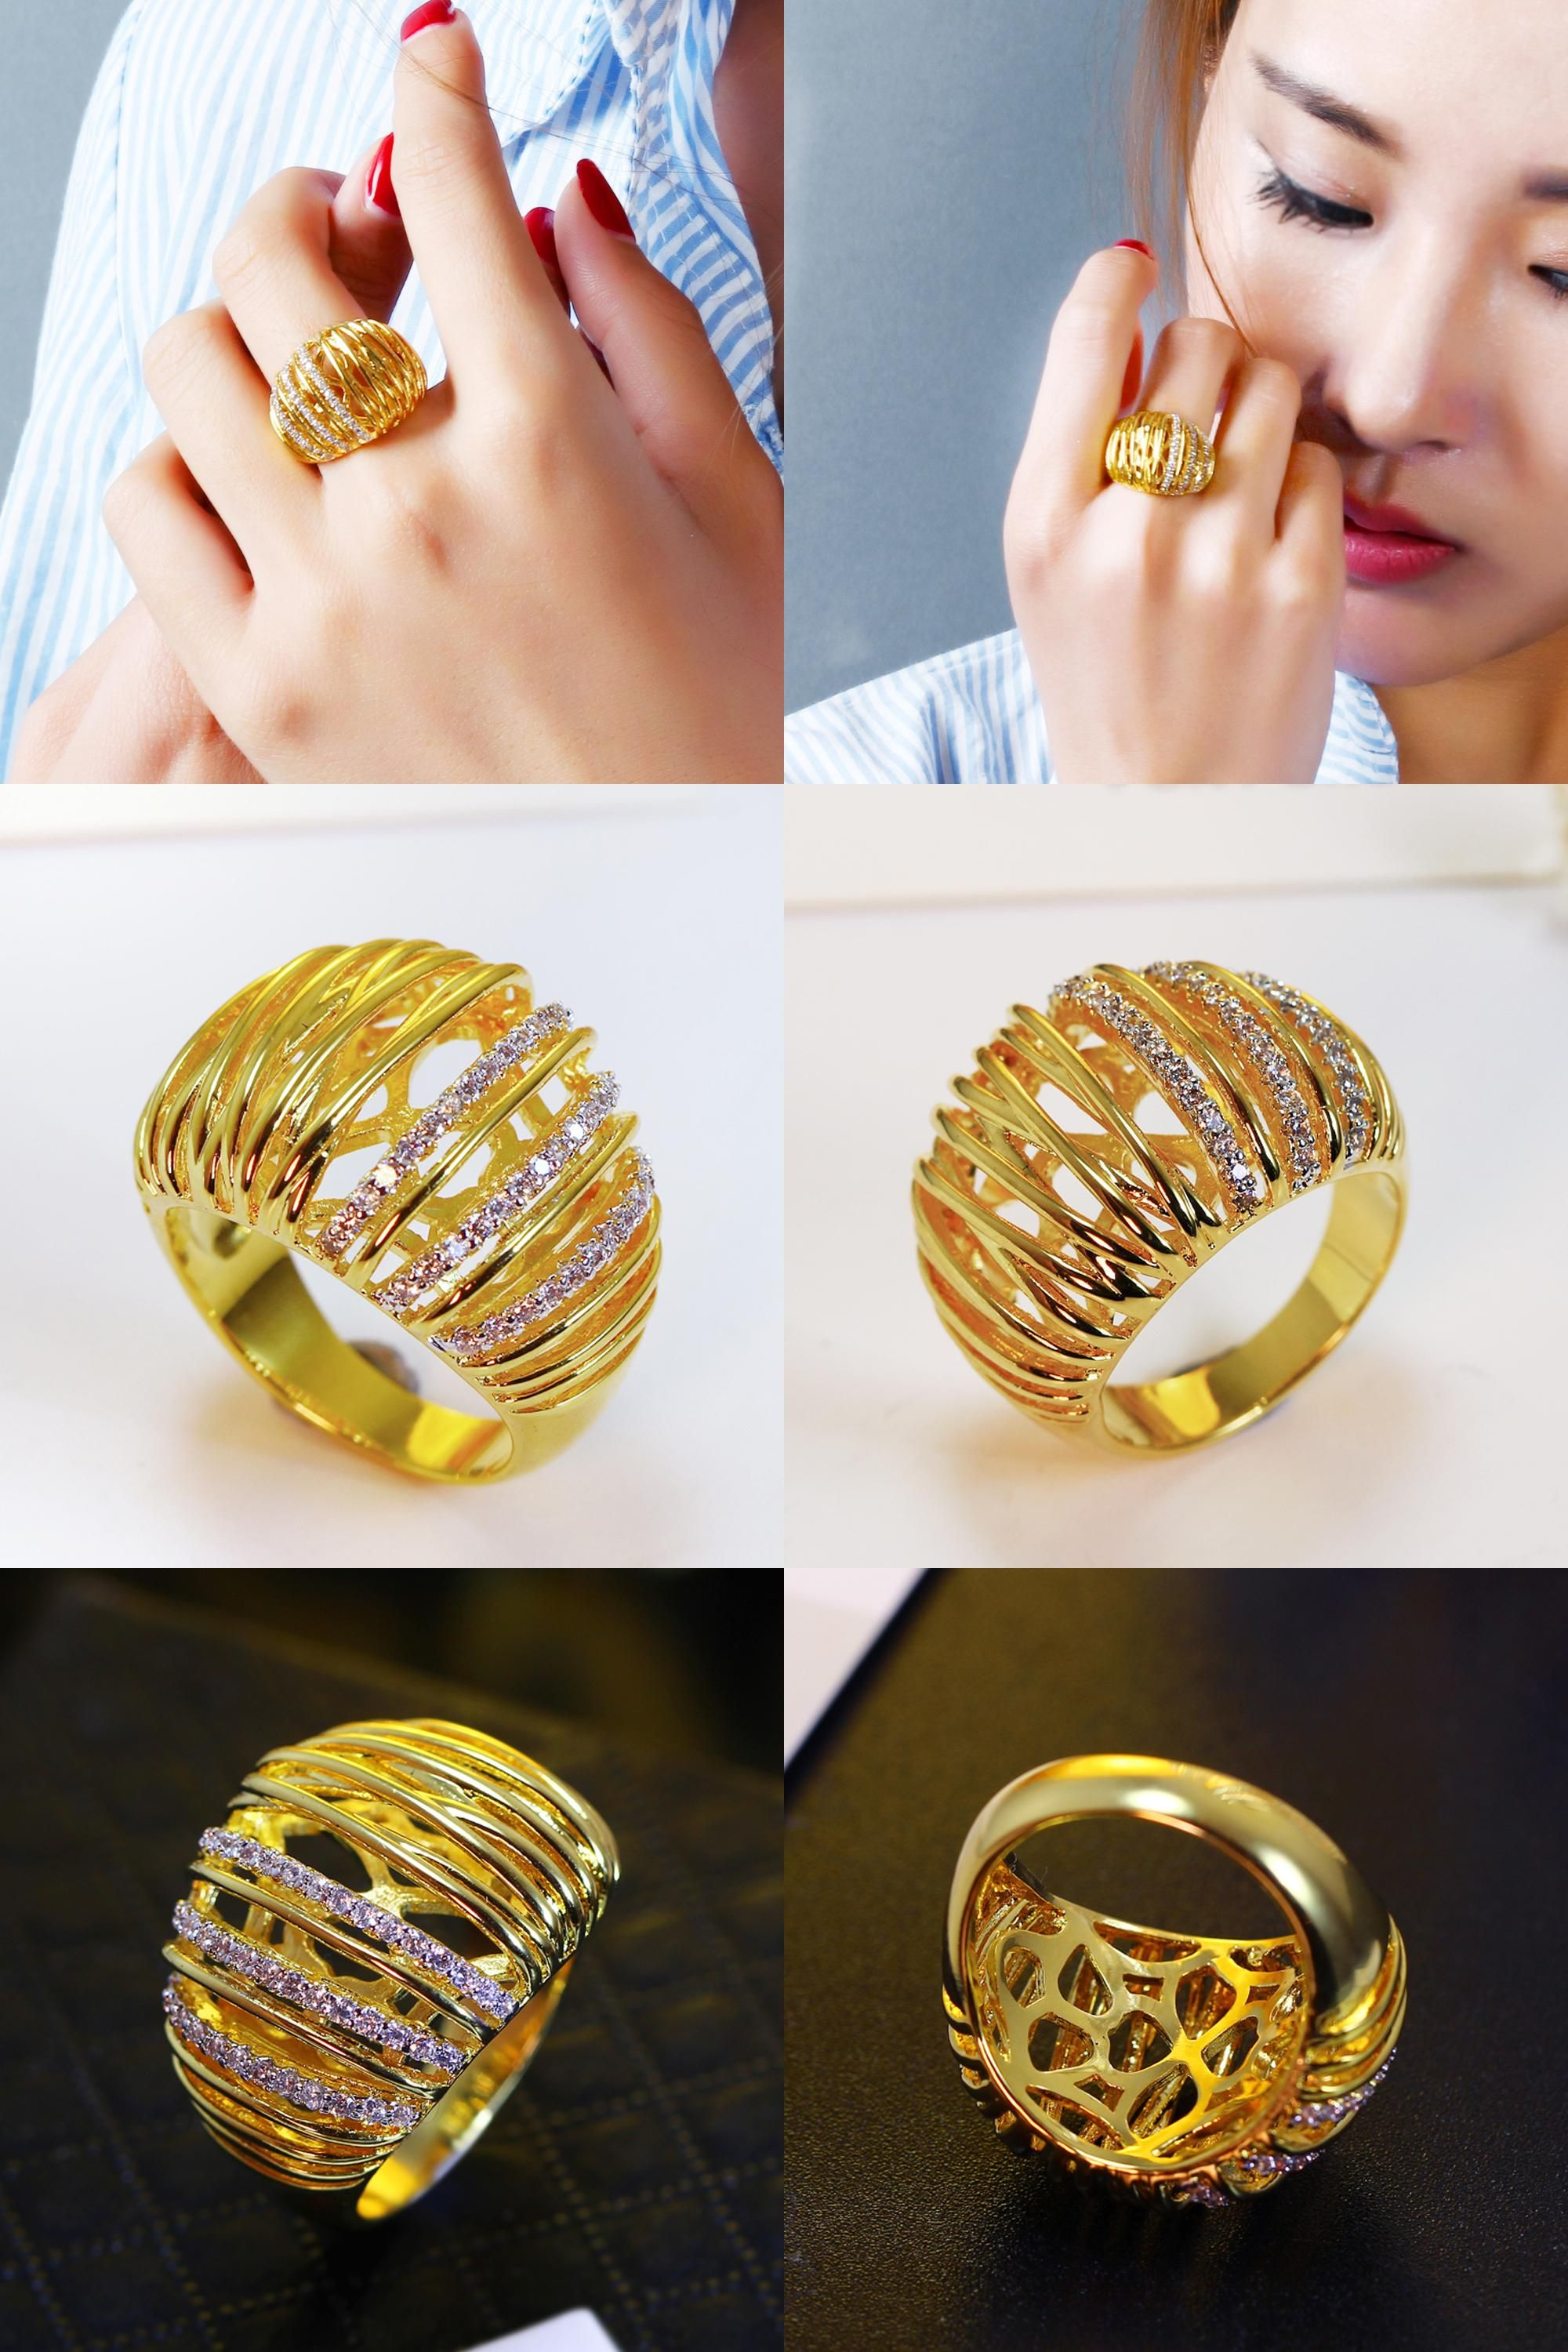 Visit to Buy] Ring of Gold color High quality Hot sale ring